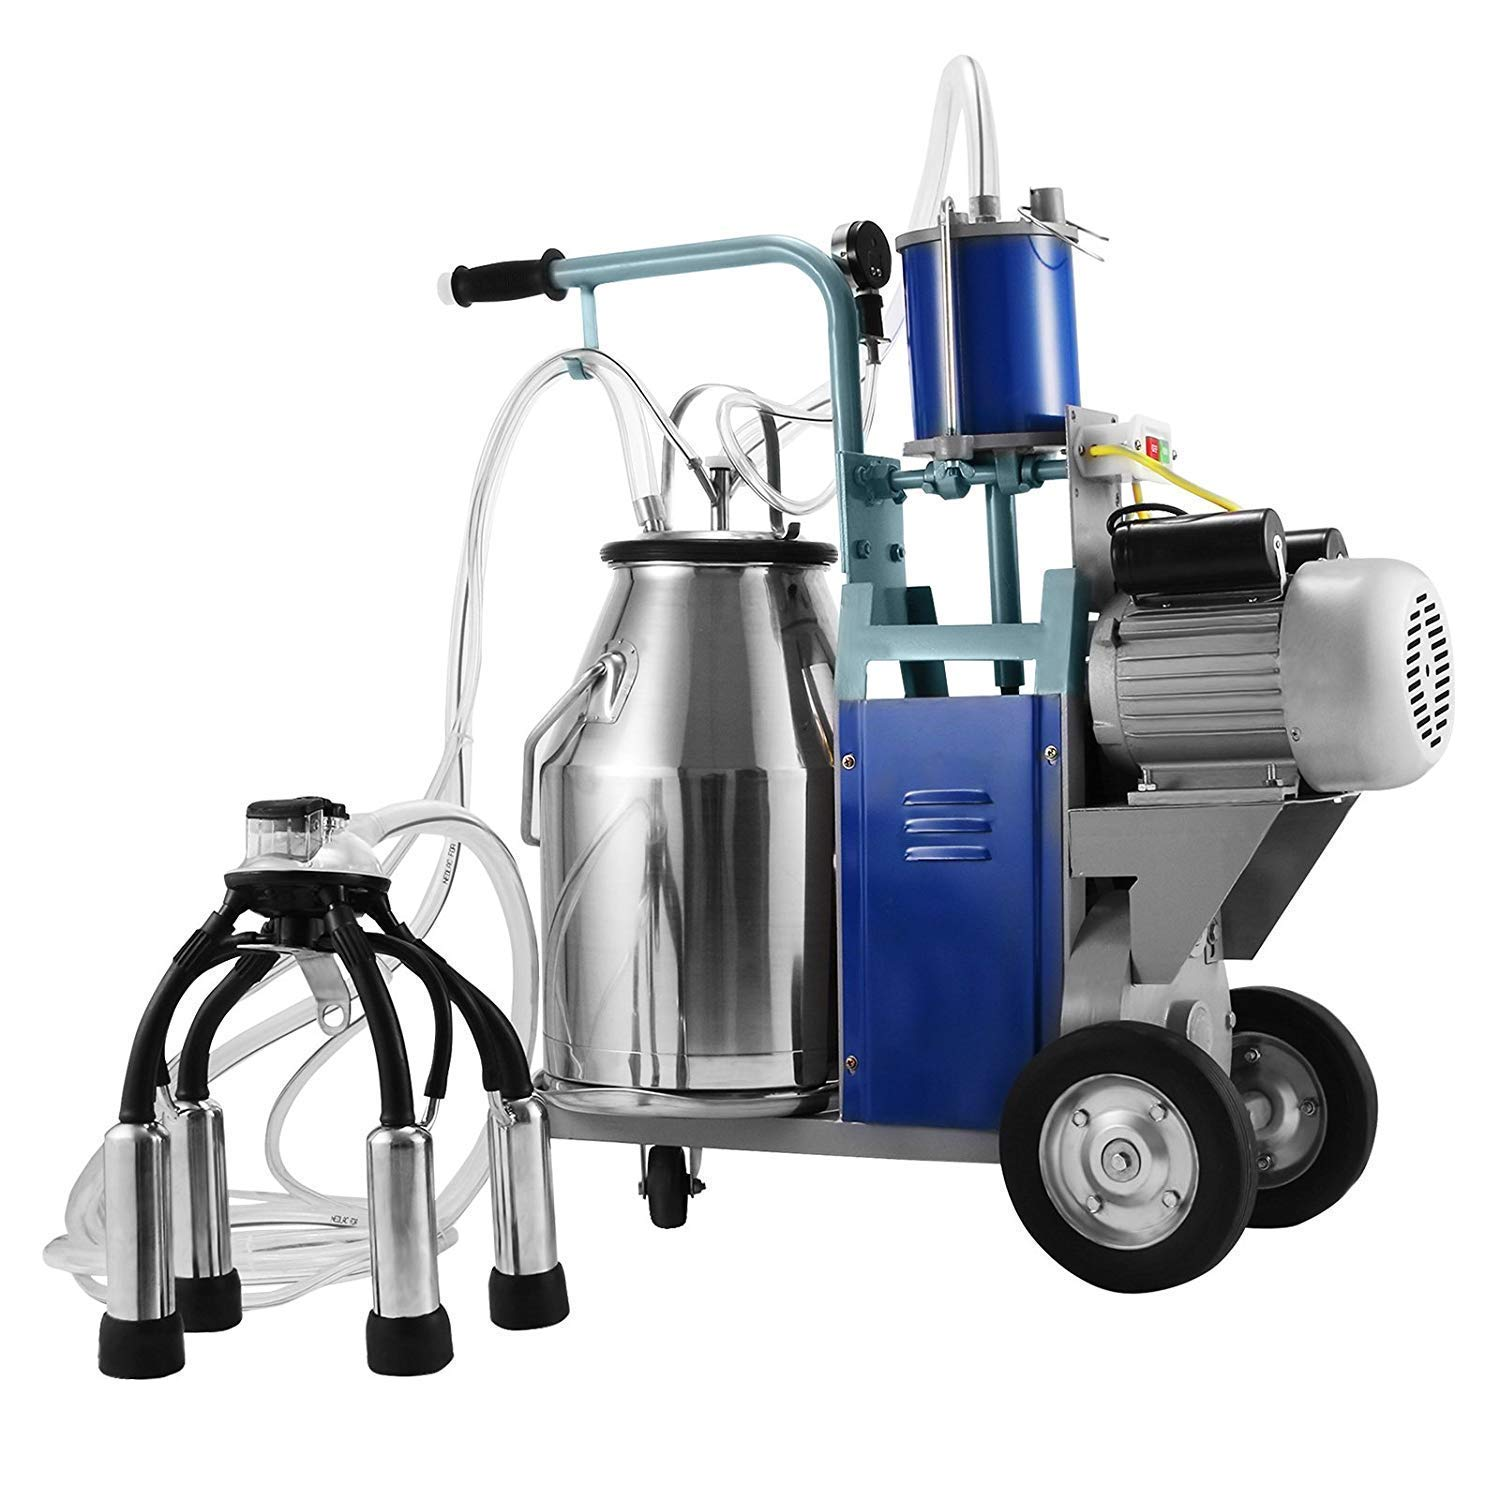 Happybuy Electric Milking Machine 1440 RPM 10-12 Cows per Hour Milking Machine 0.55 KW Milking Machine Single with 25L 304 Stainless Steel Bucket Milk Machine for Cows Cattle (for Cow)